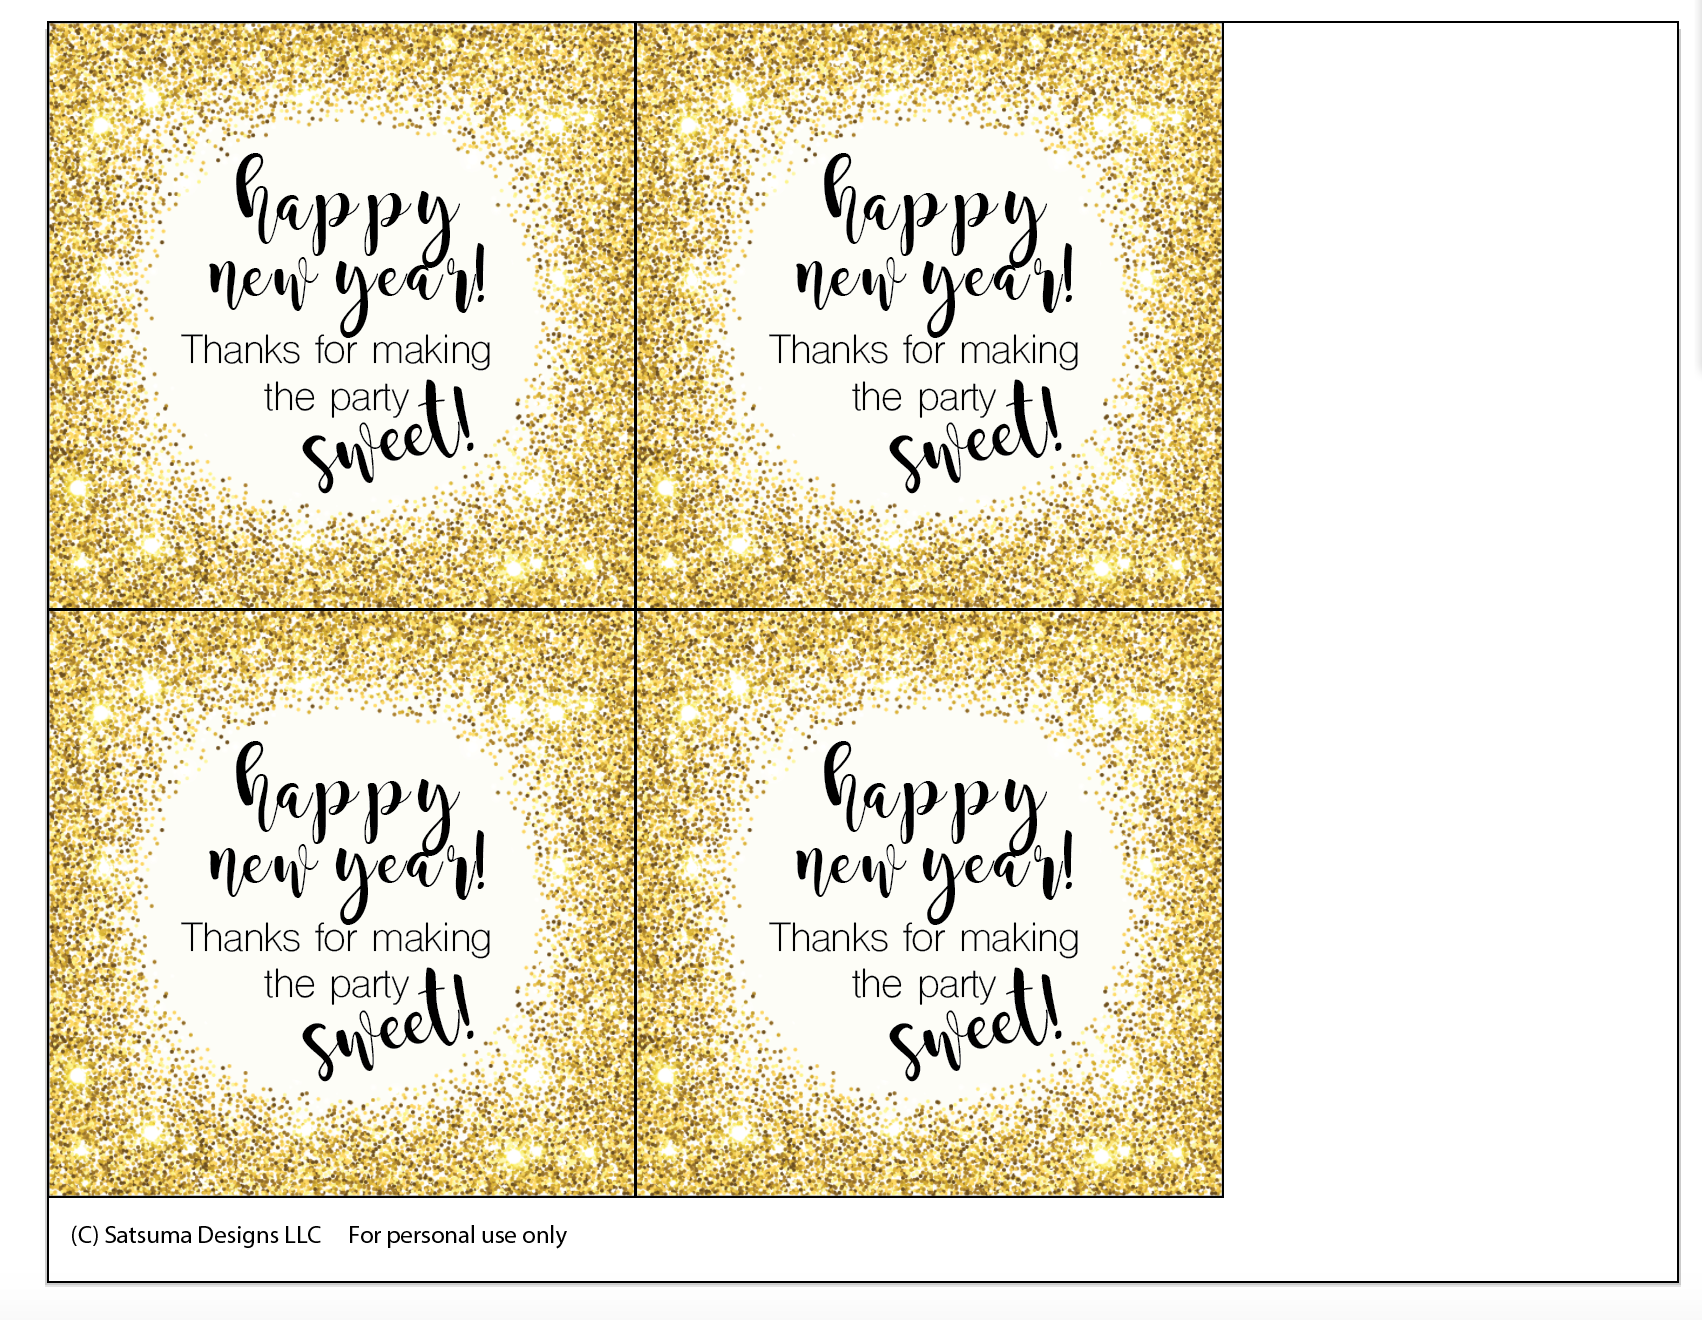 Click through to print and use my happy new year sweet party favor printables | New Years Eve party ideas | SatsumaDesigns.com #NYE #partyplanning #printables